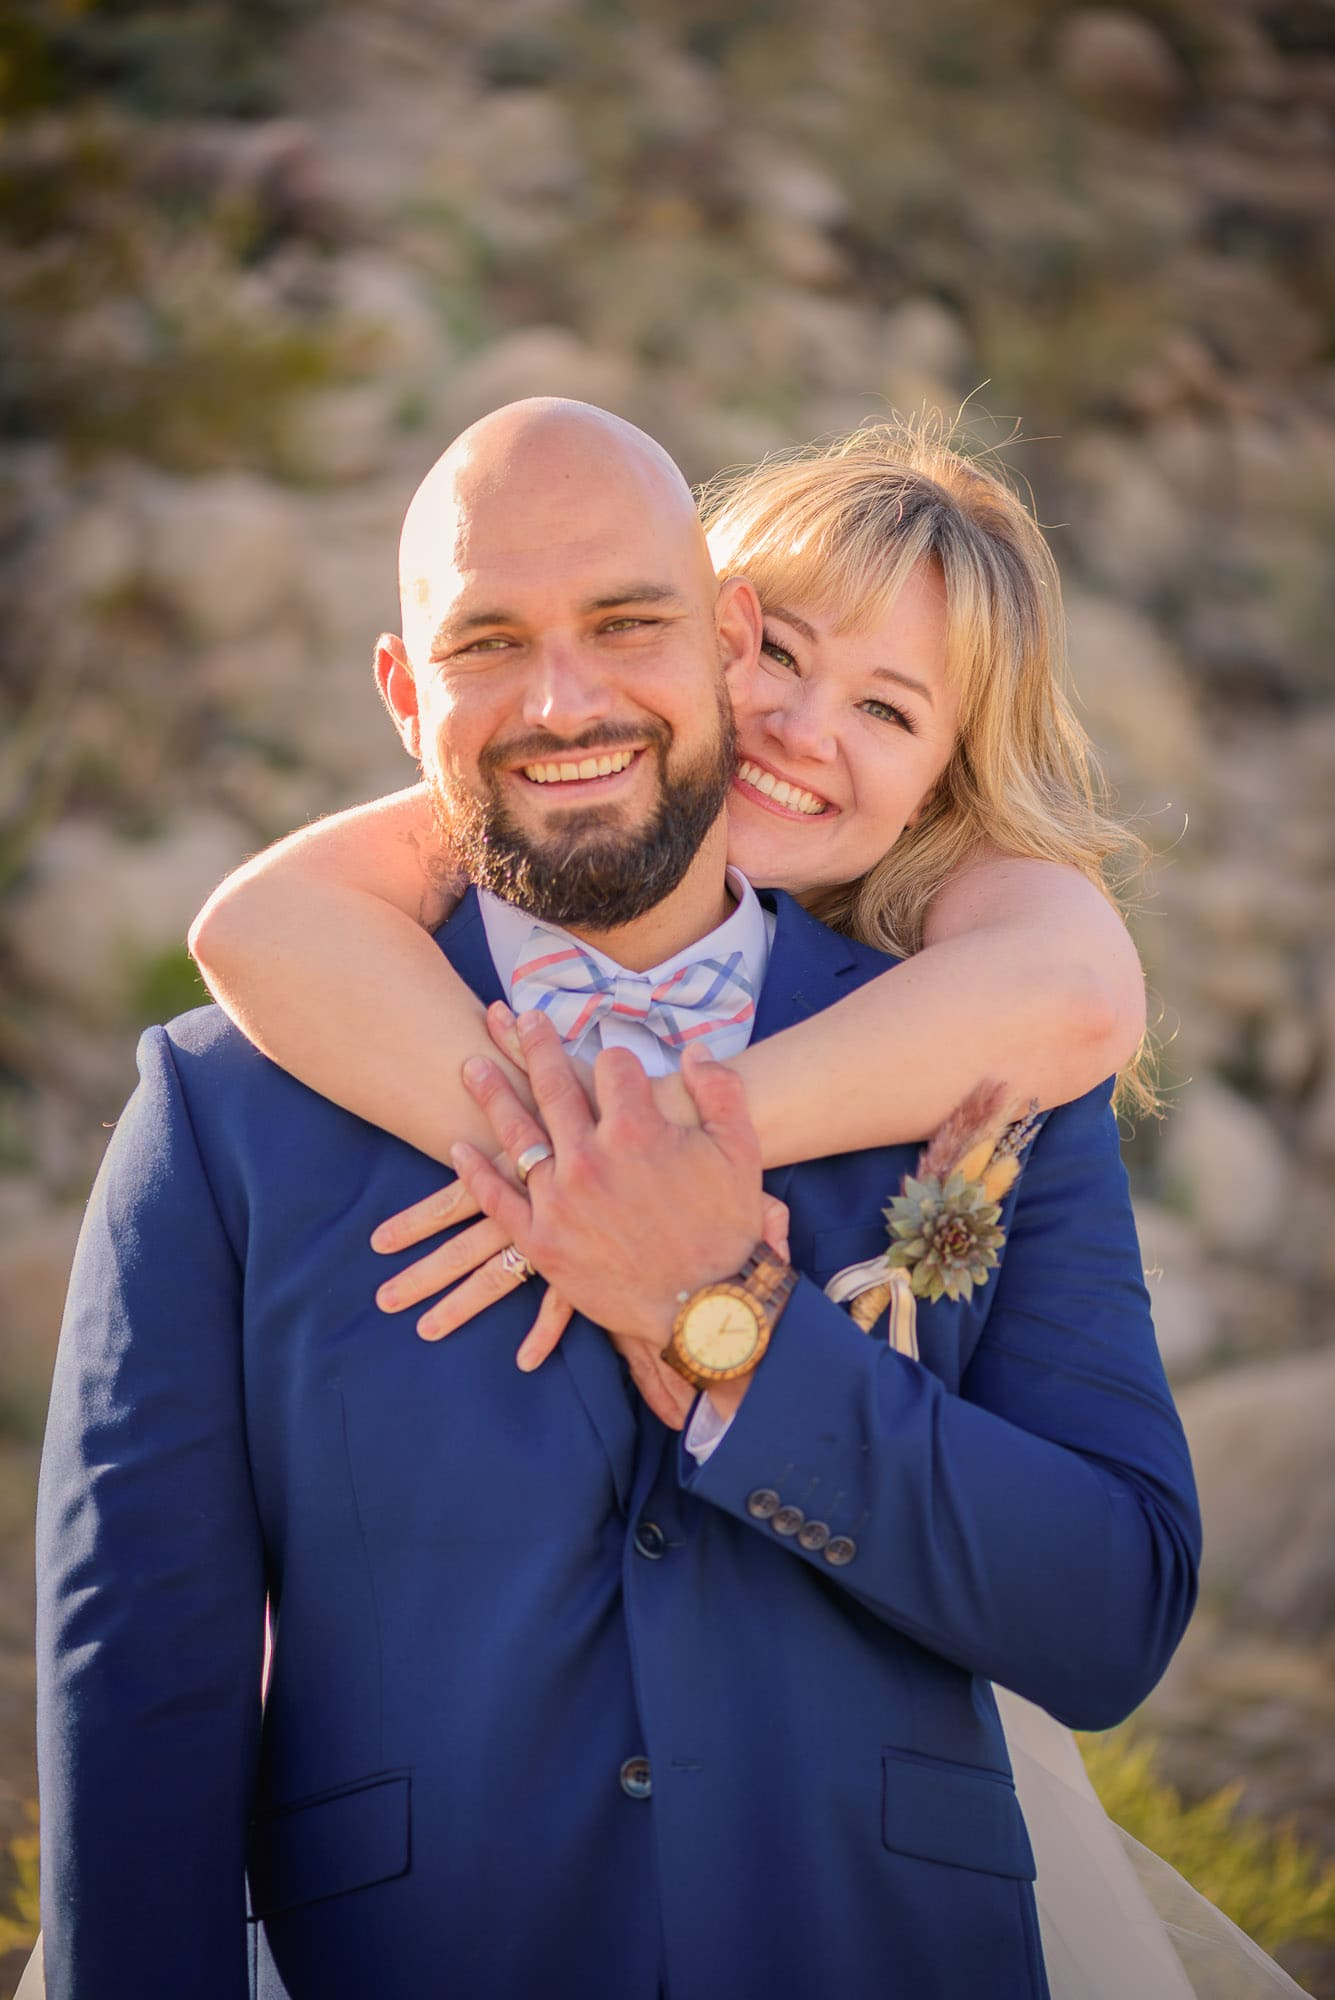 044_Alan_and_Heidi_Joshua_Tree_Spring_Elopement